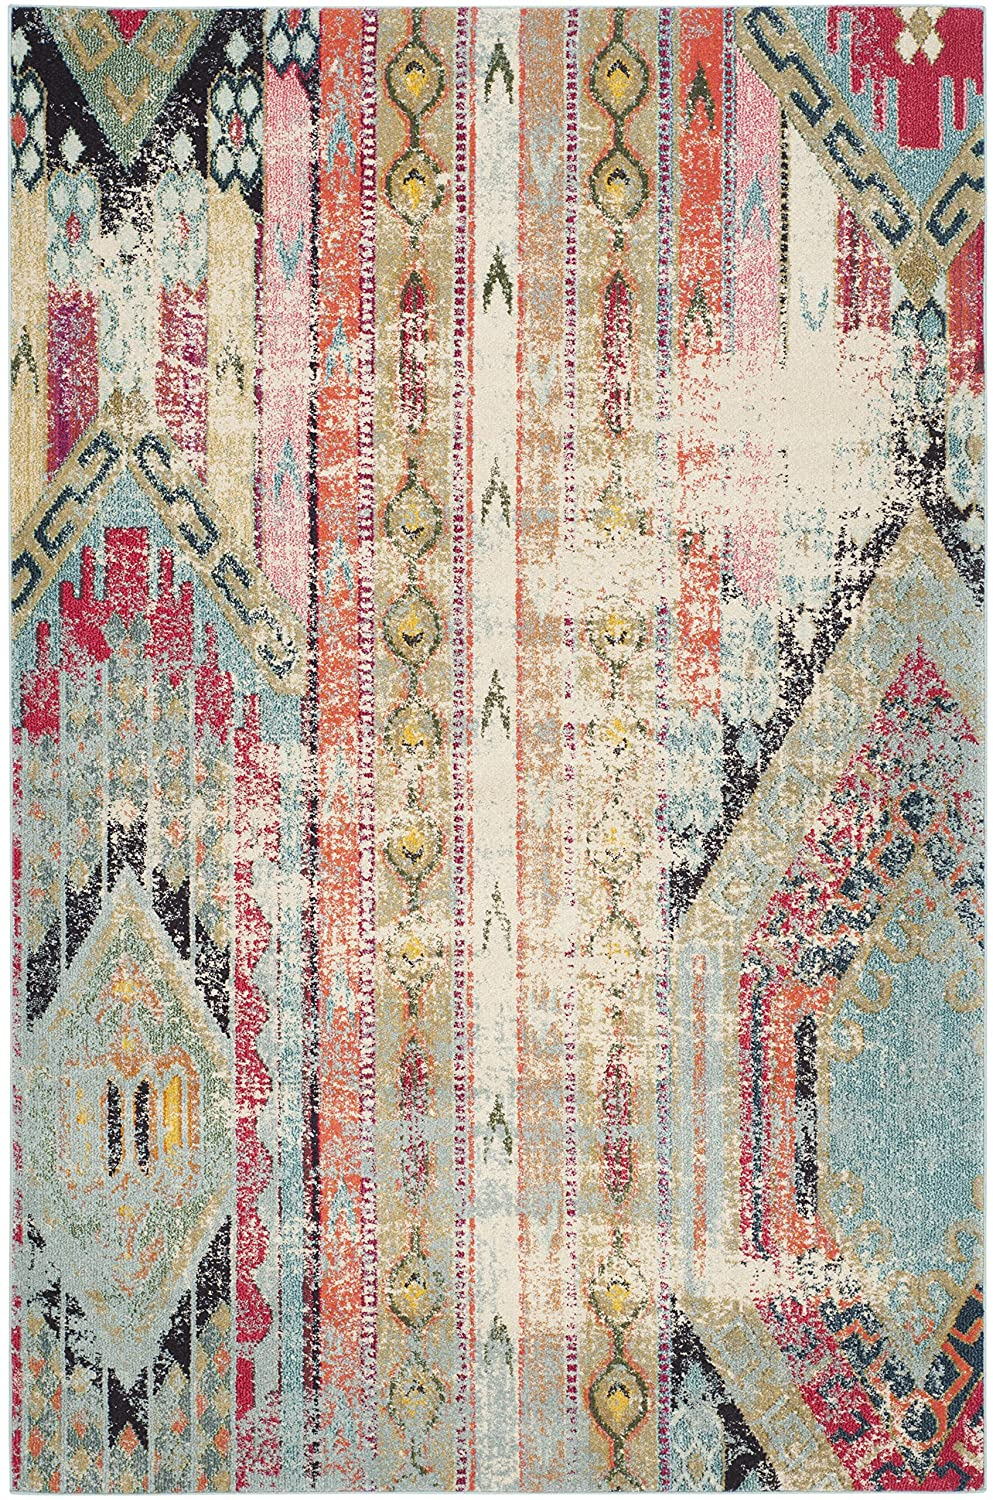 Colorful distressed bohemian area rug with pinks and blues